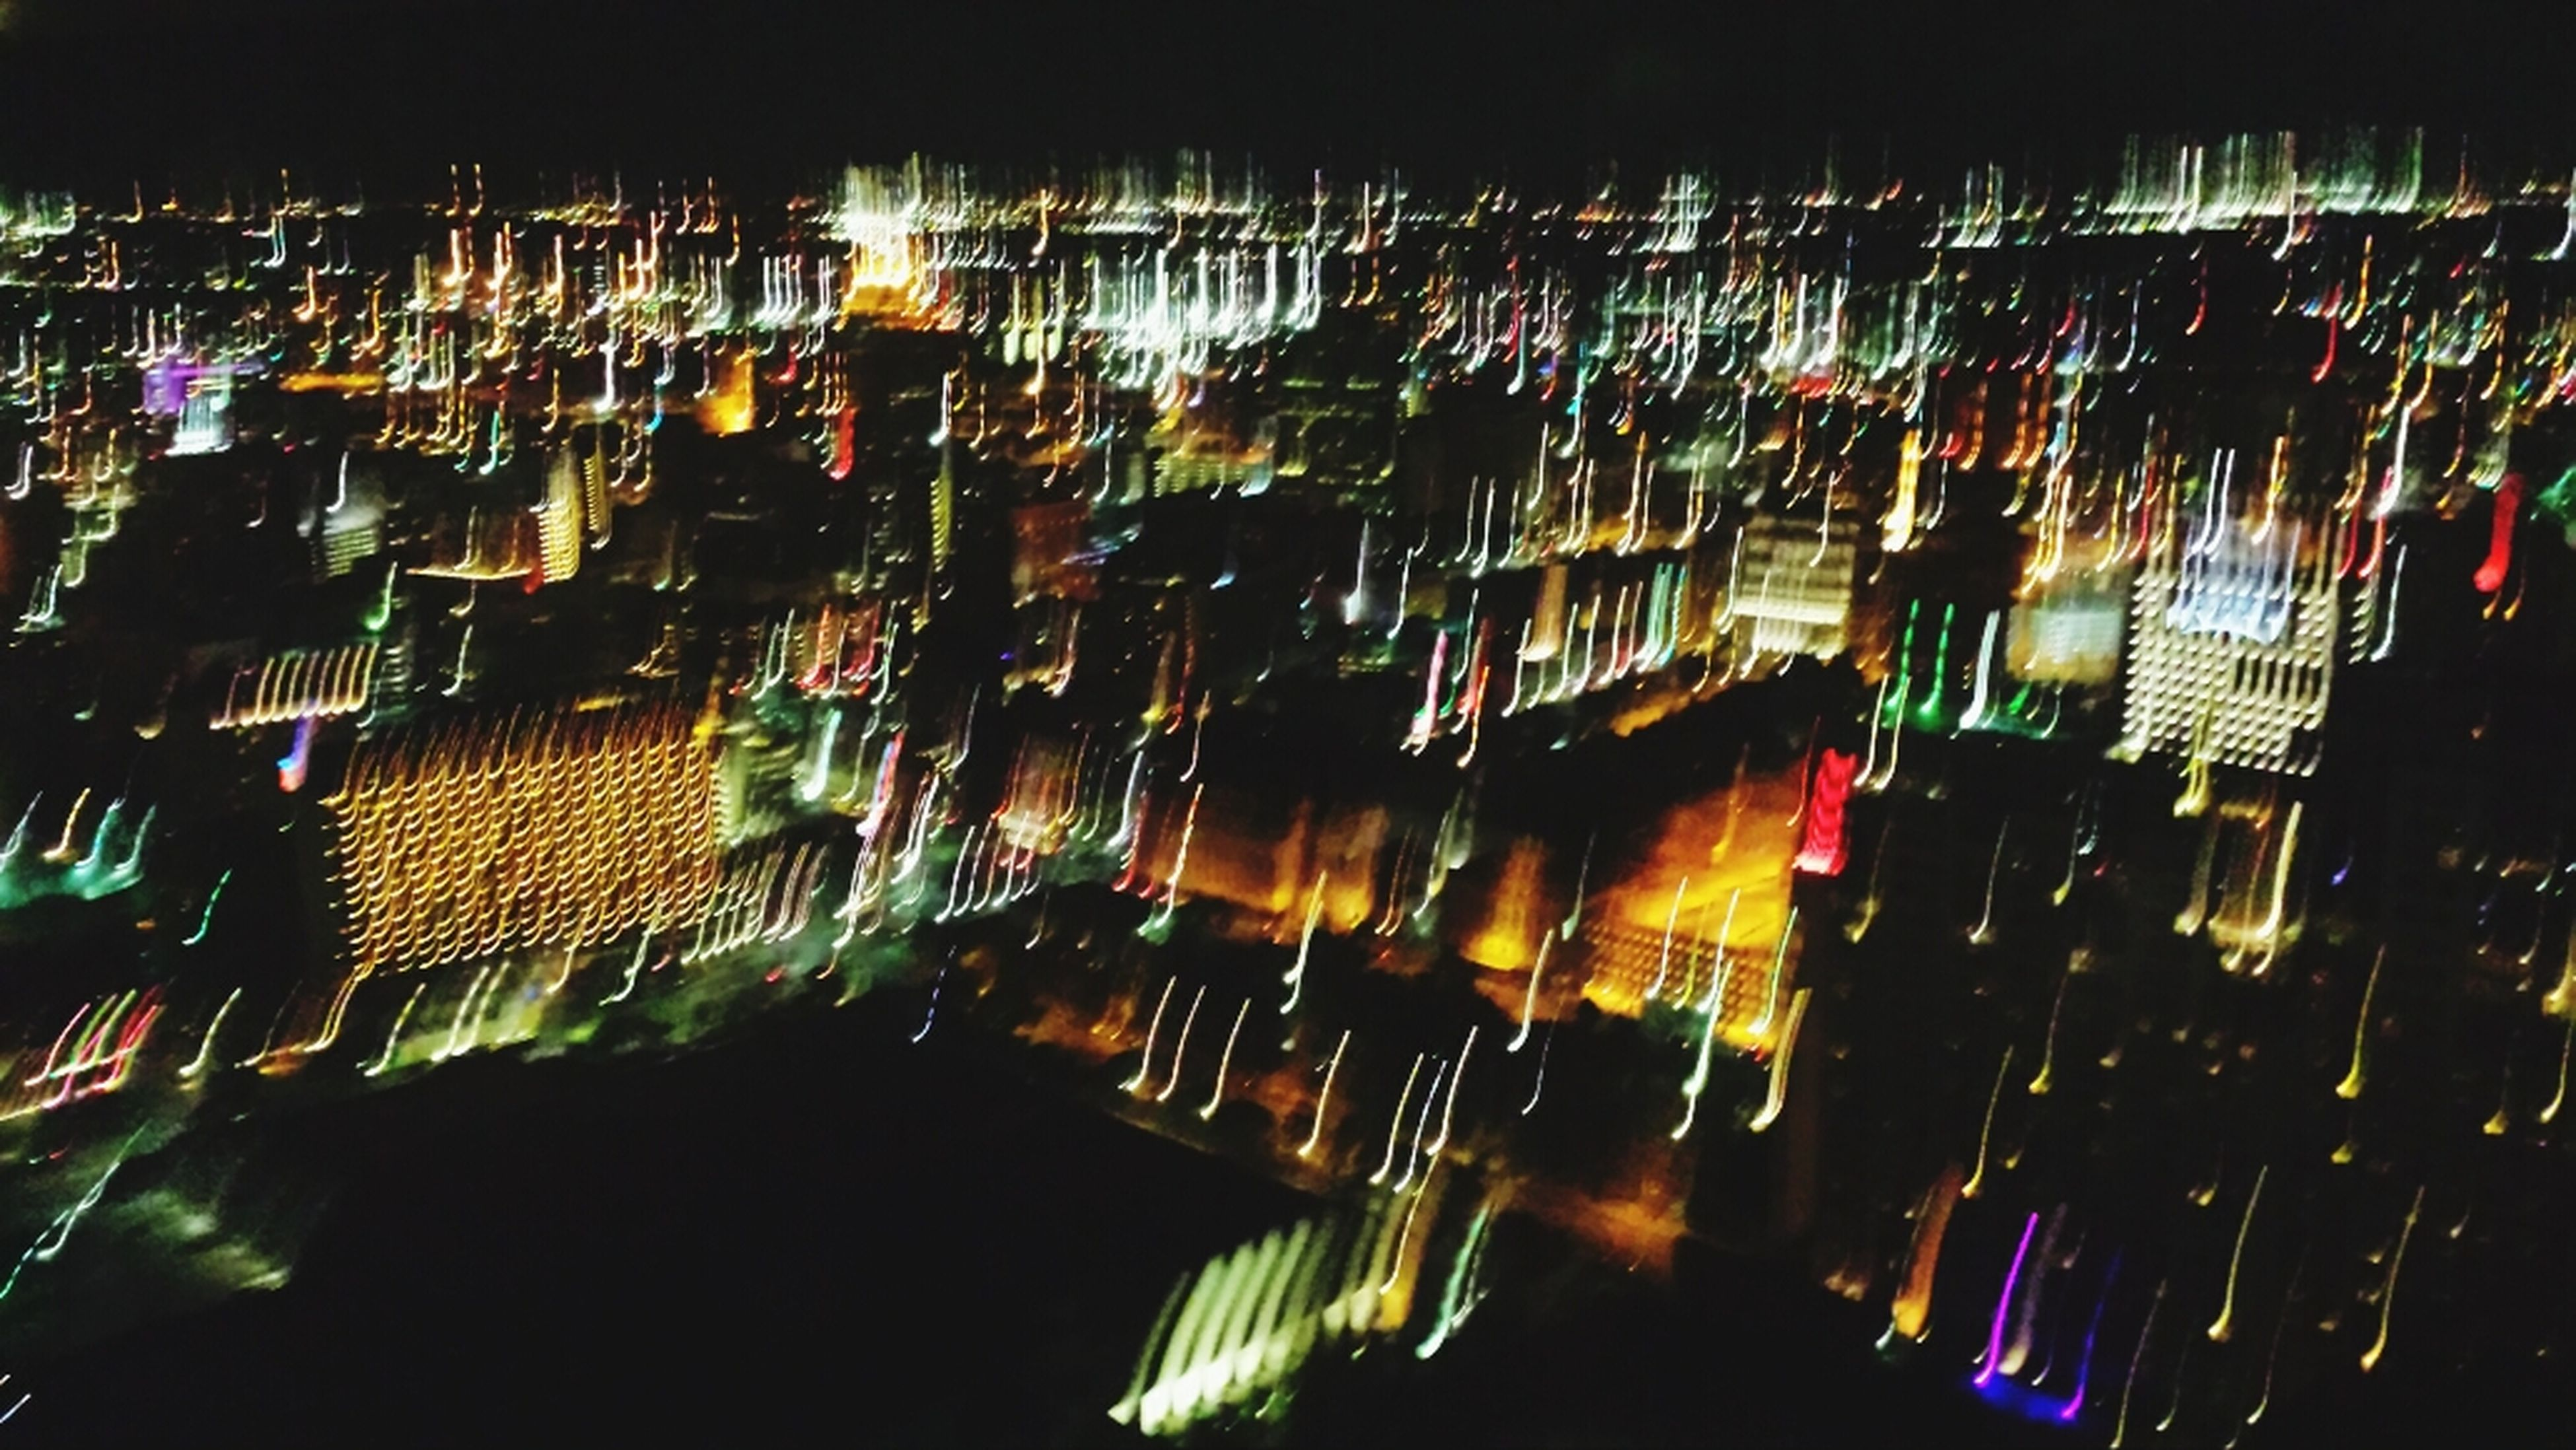 illuminated, night, building exterior, city, architecture, built structure, cityscape, high angle view, skyscraper, crowded, modern, city life, lighting equipment, residential building, light - natural phenomenon, office building, no people, outdoors, residential structure, abundance